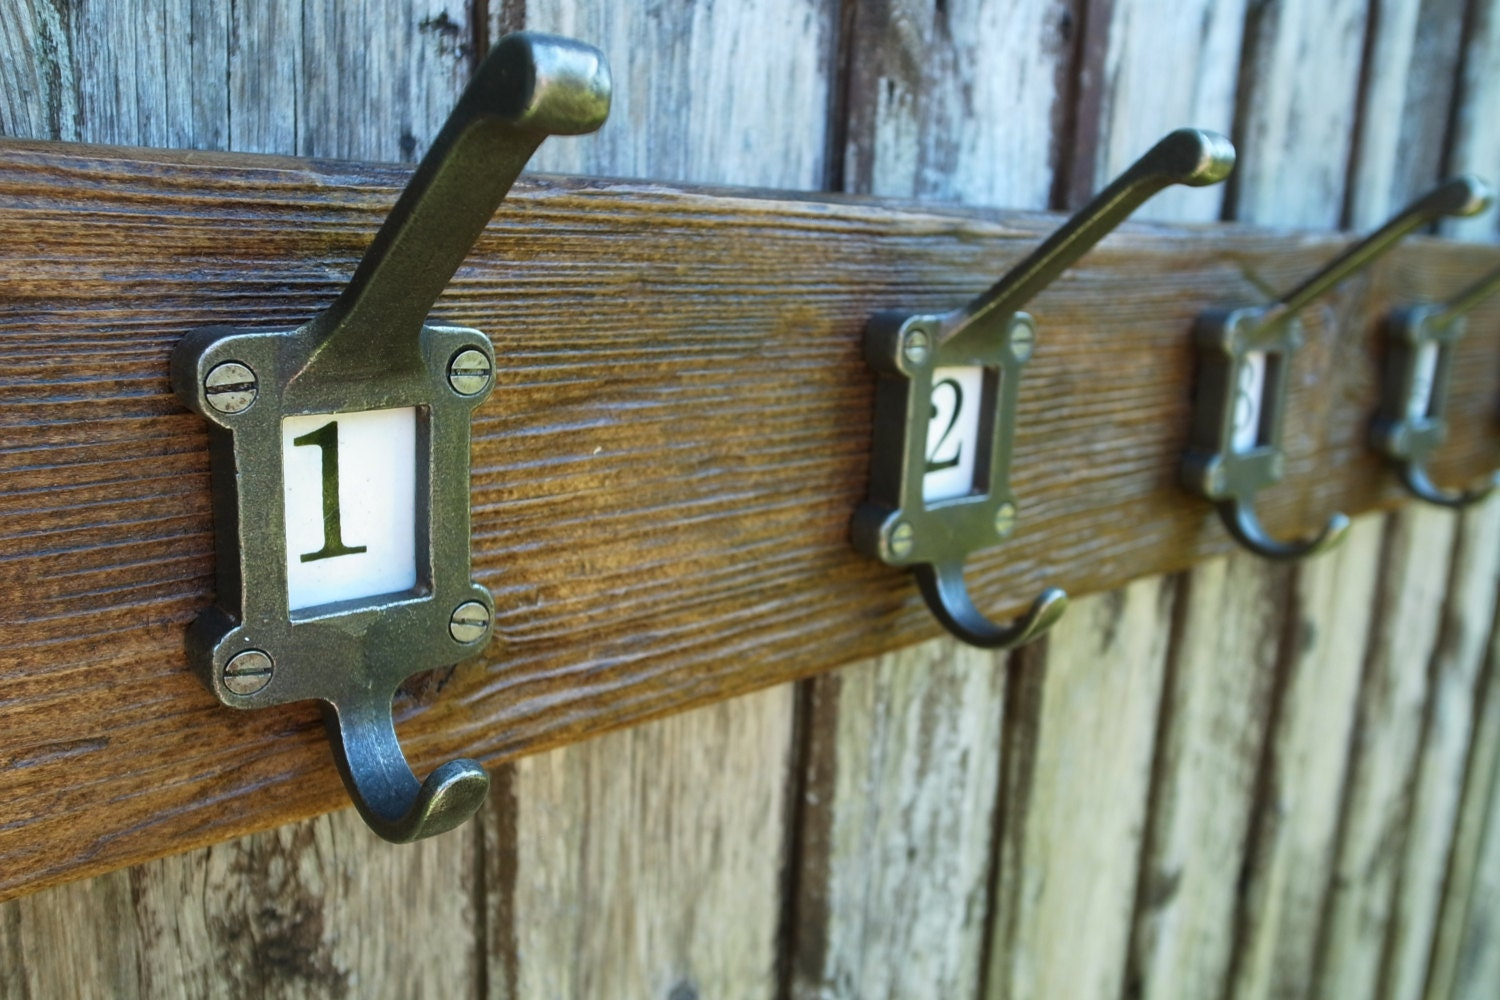 8 X CAST IRON SCHOOL COAT HOOKS WITH CERAMIC NUMBER INSERTS